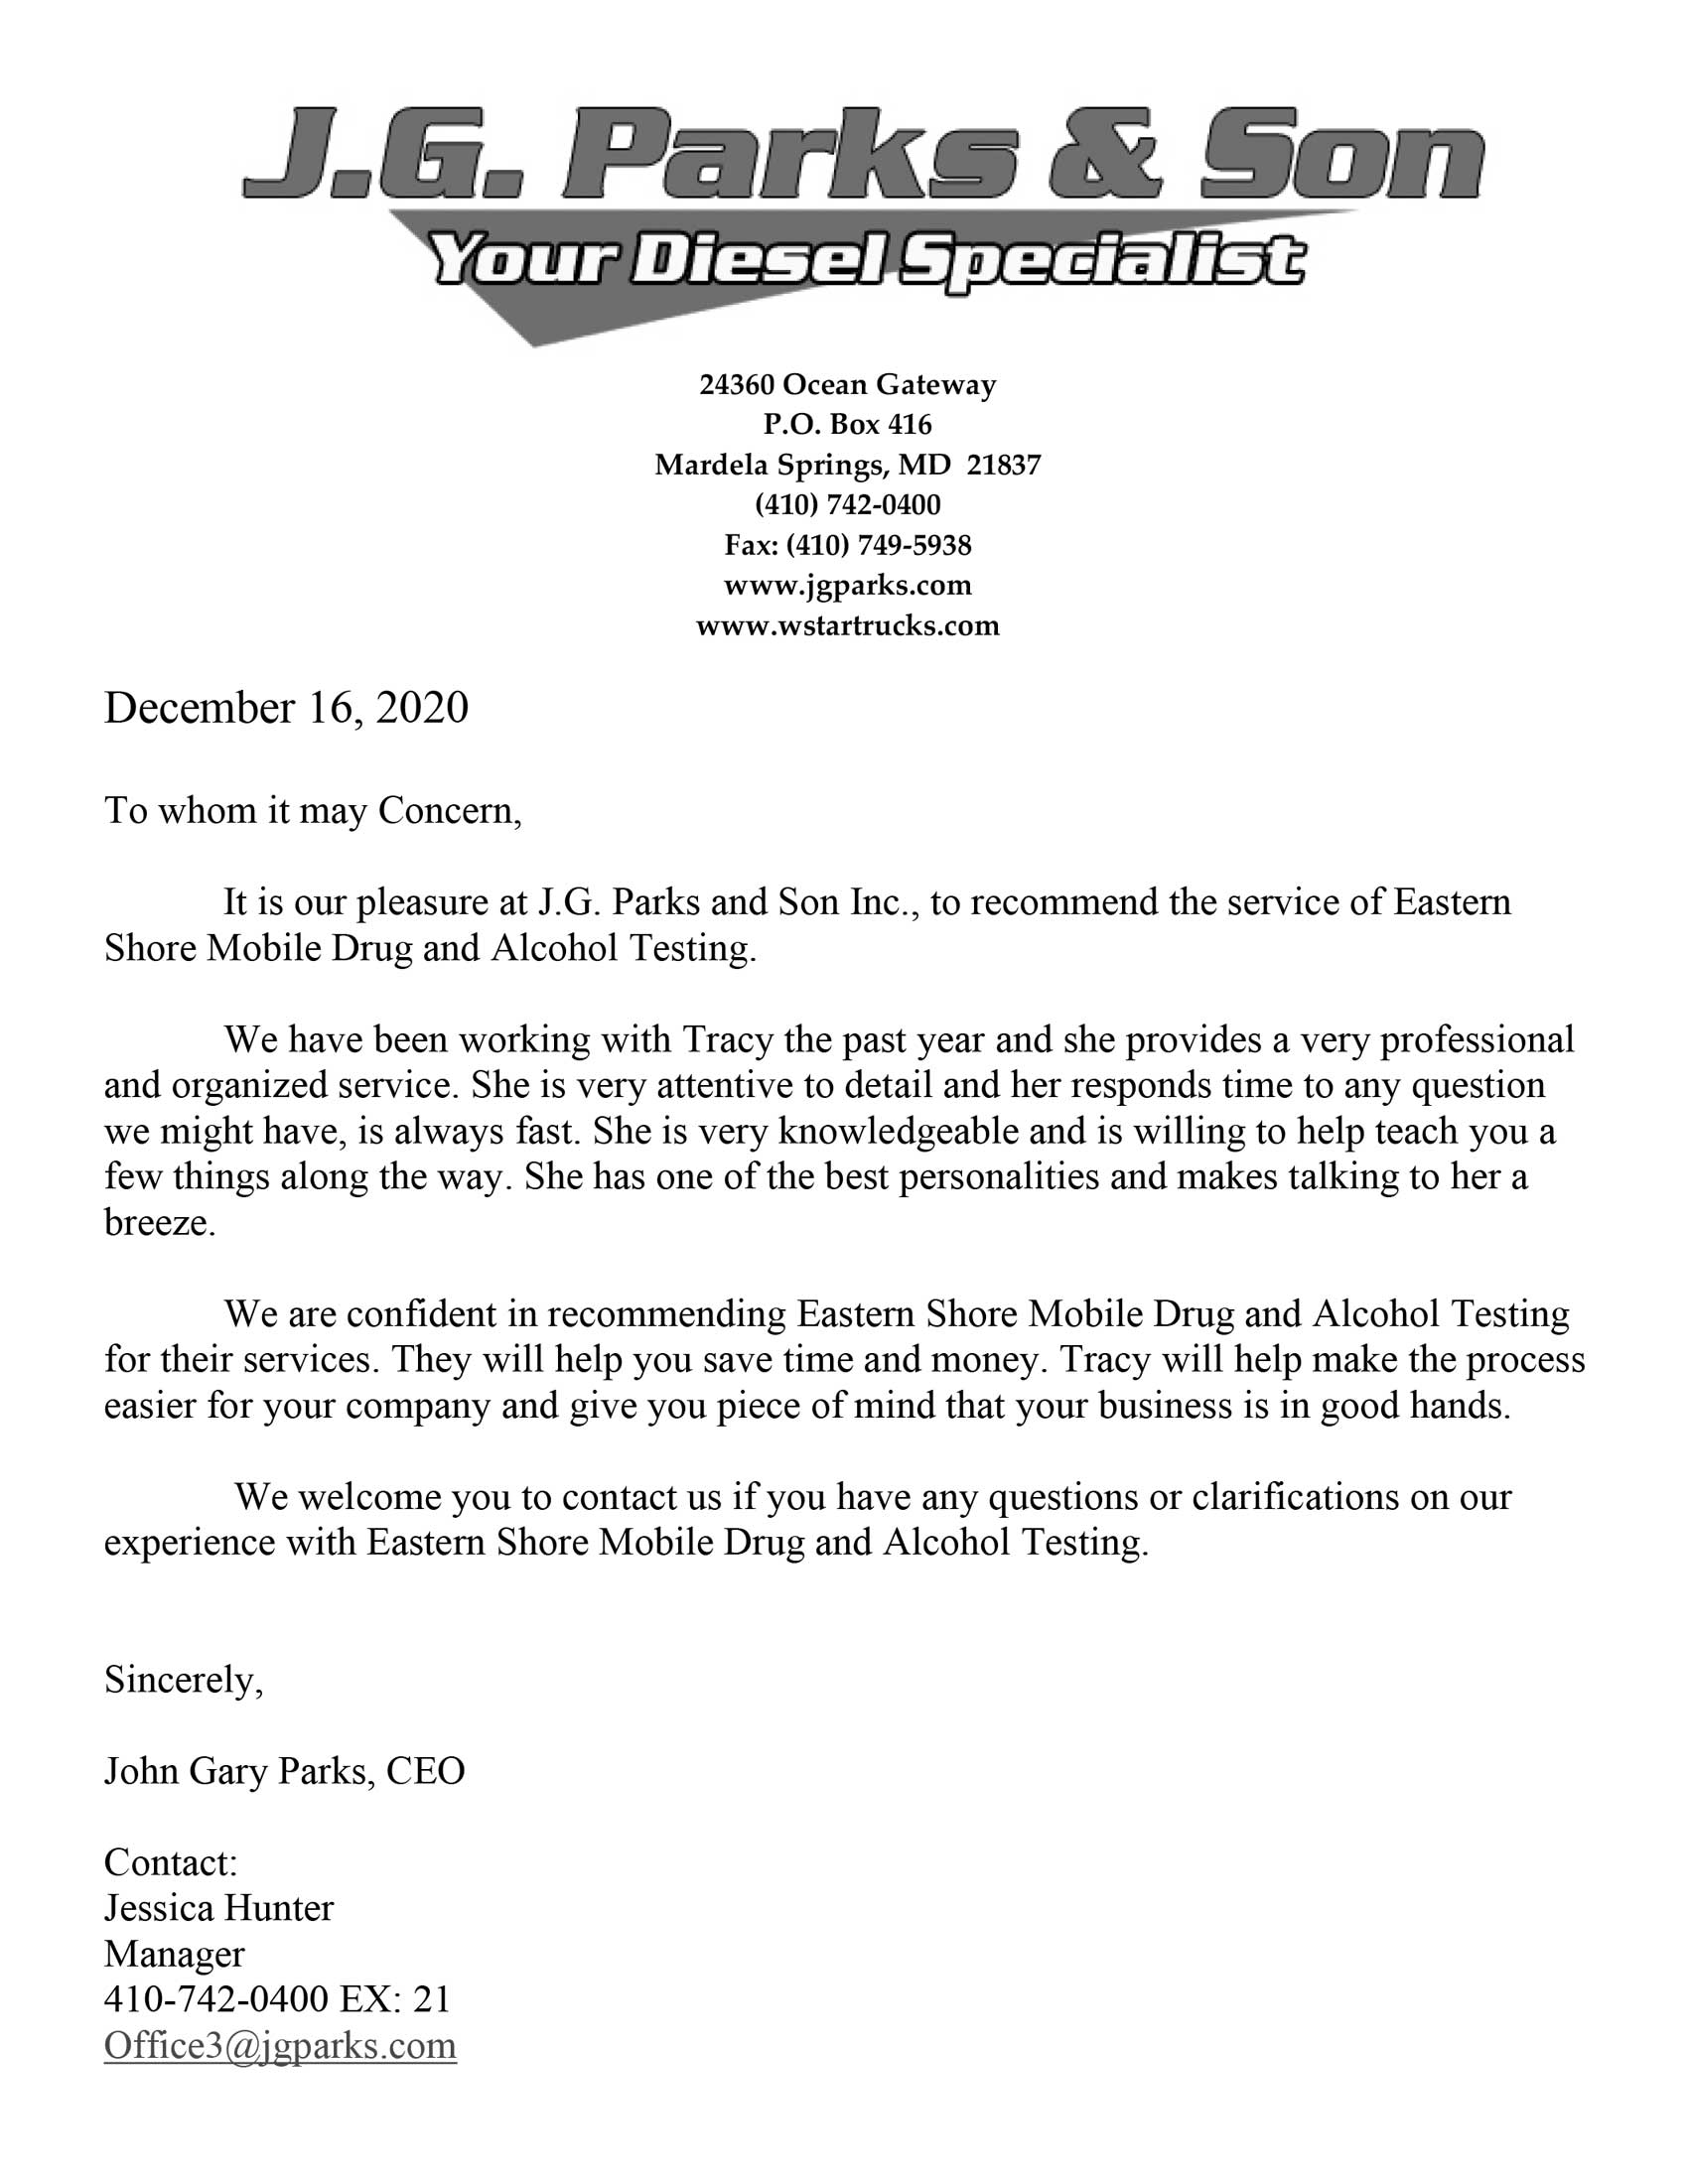 J G Parks and Son Recommendation letter